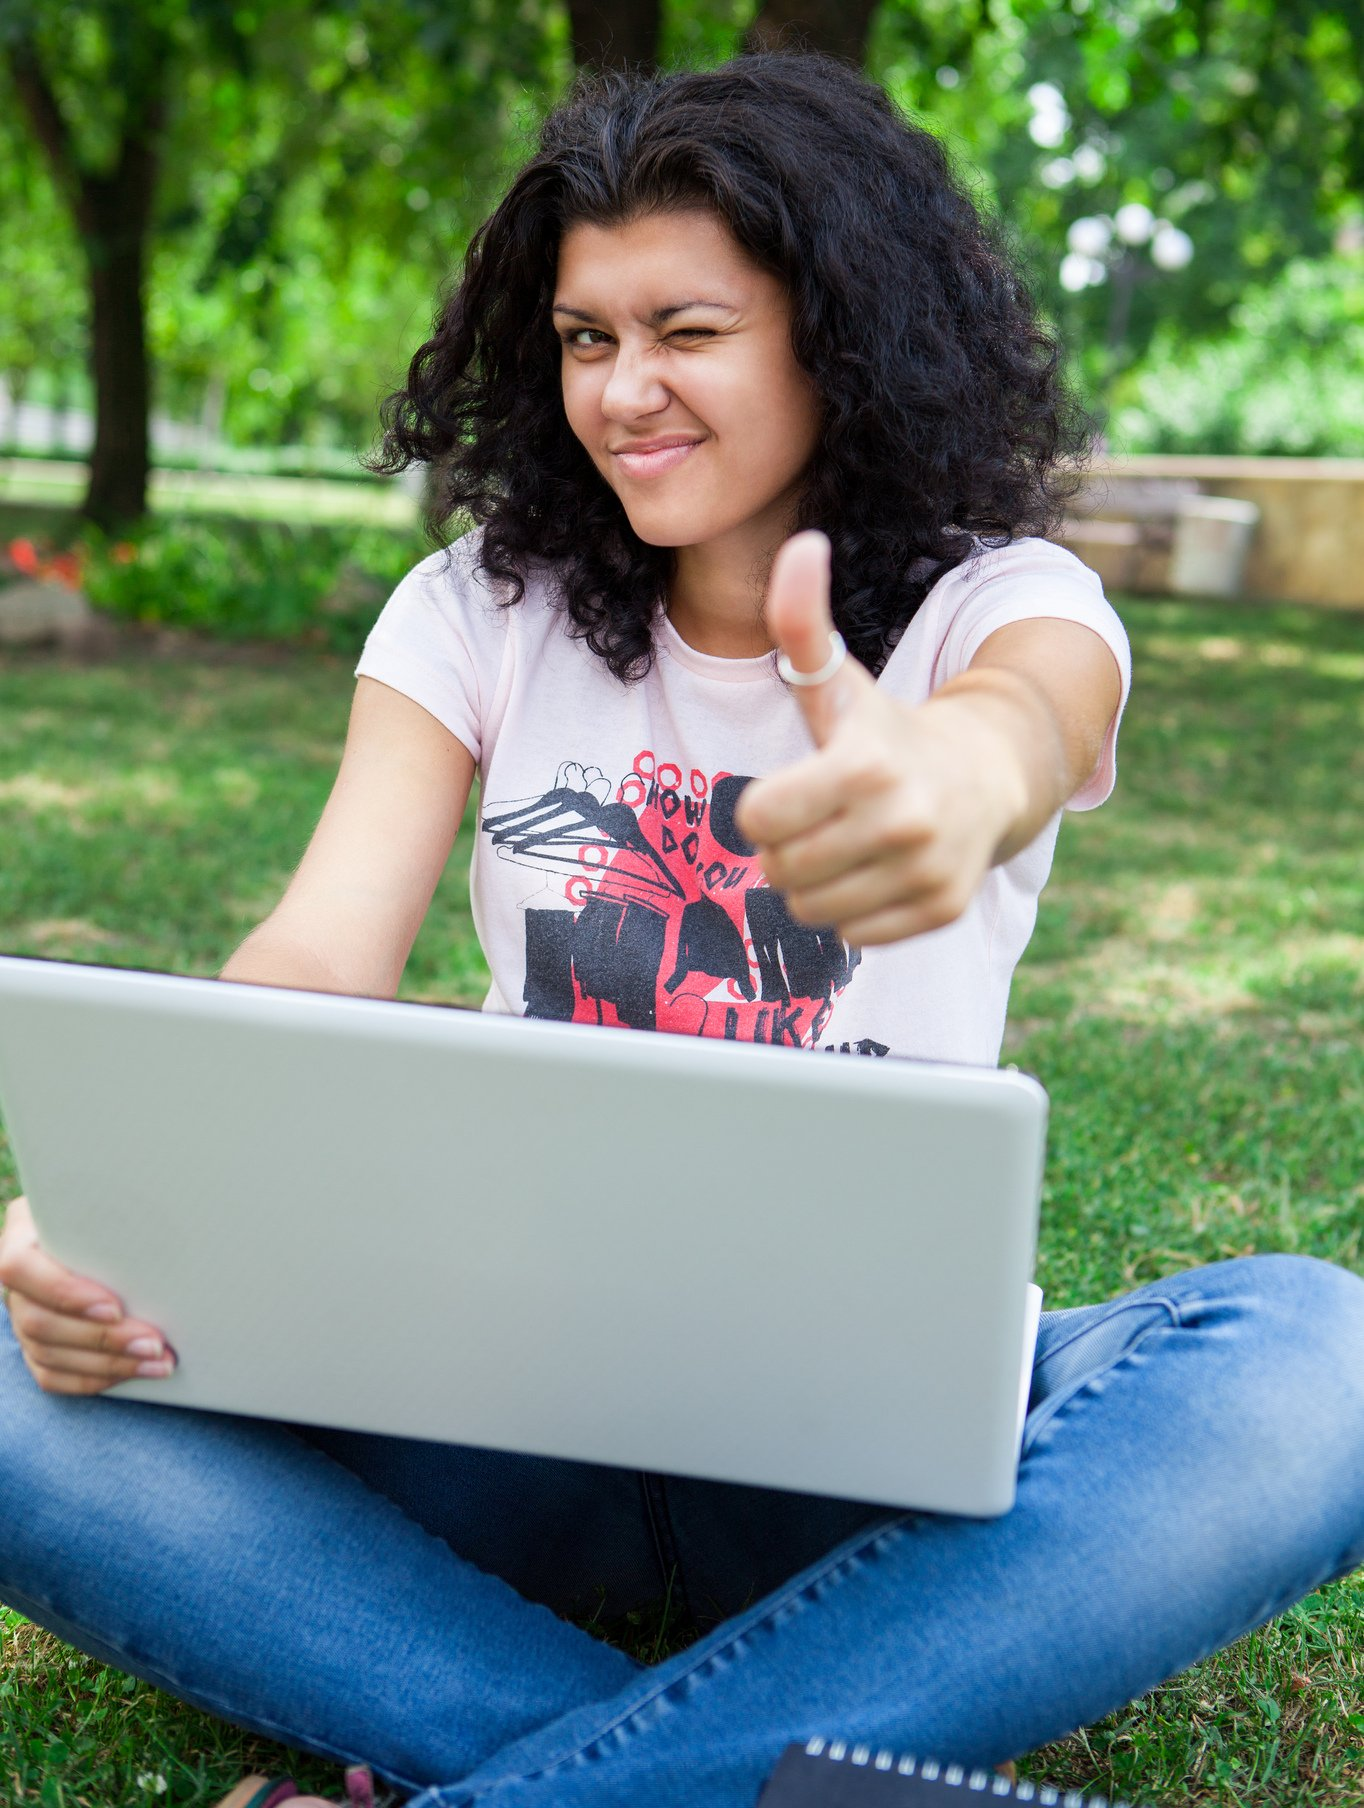 A college girl on her laptop in the park giving the thumbs up sign